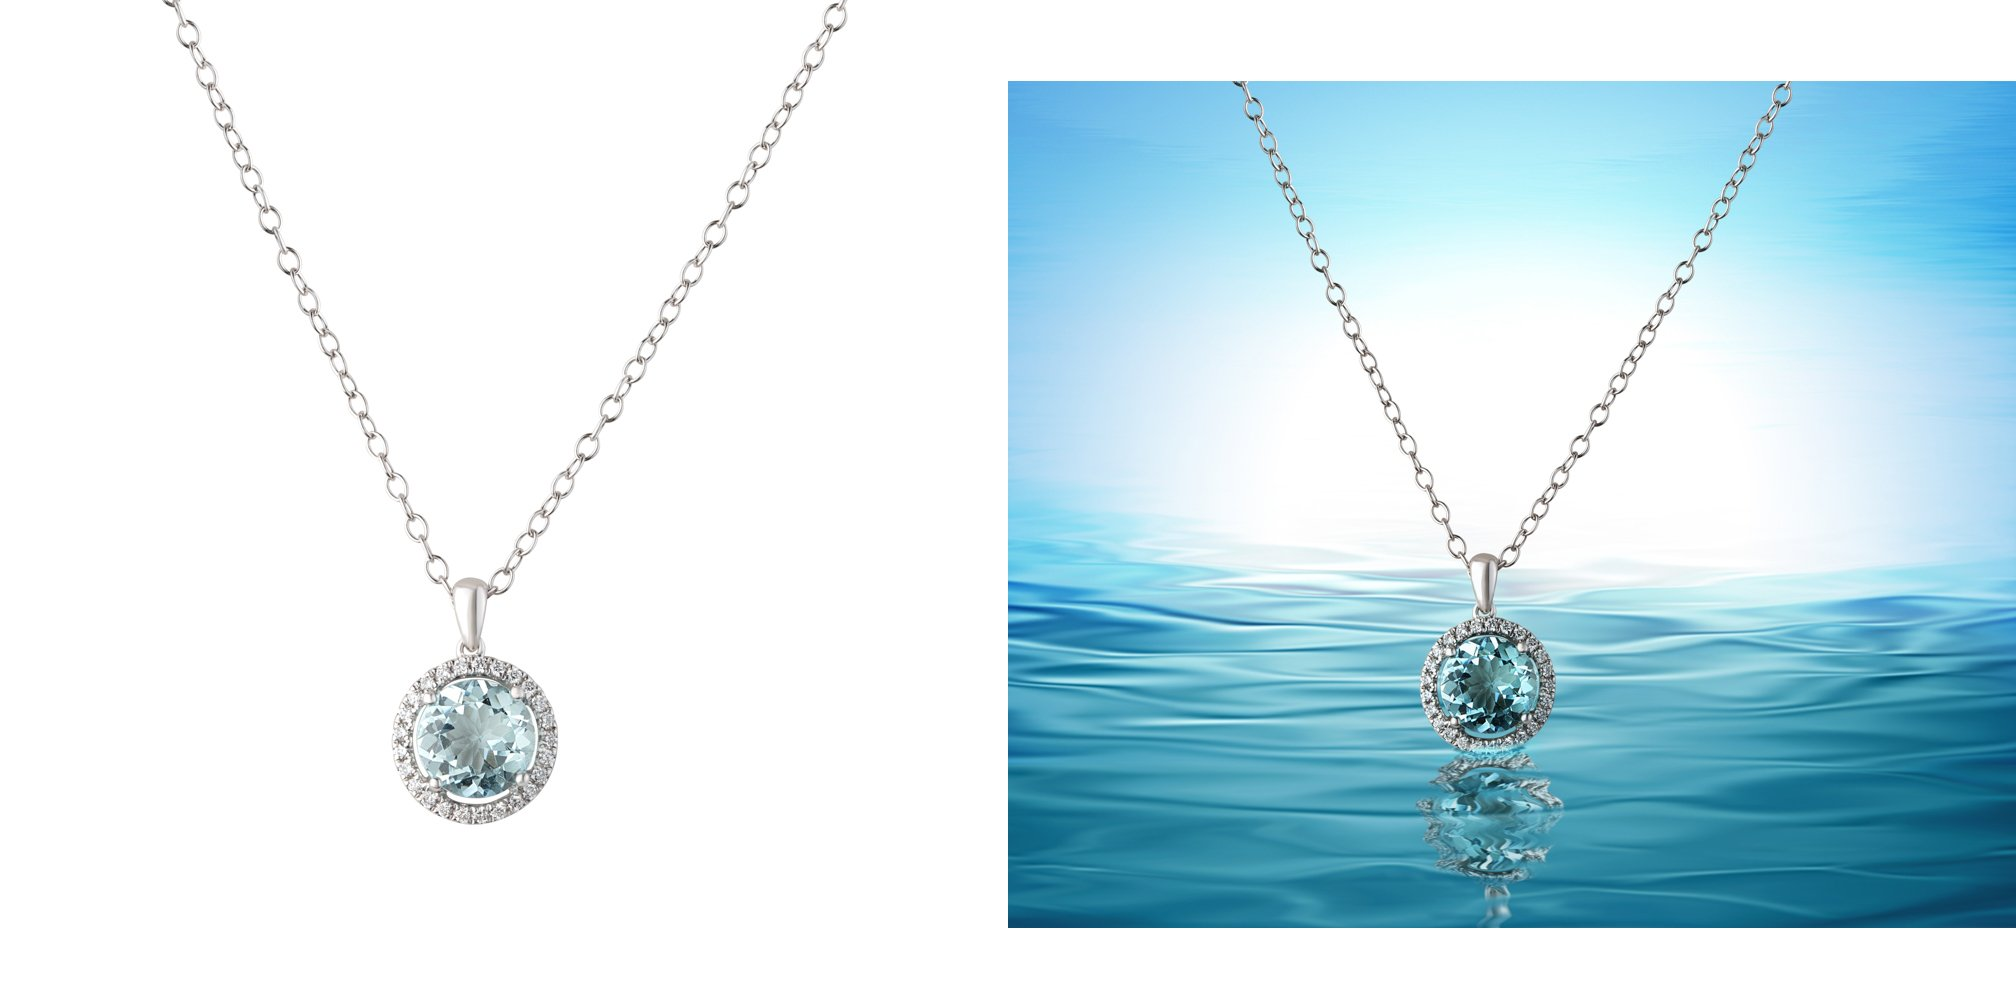 Website photography for jewellery